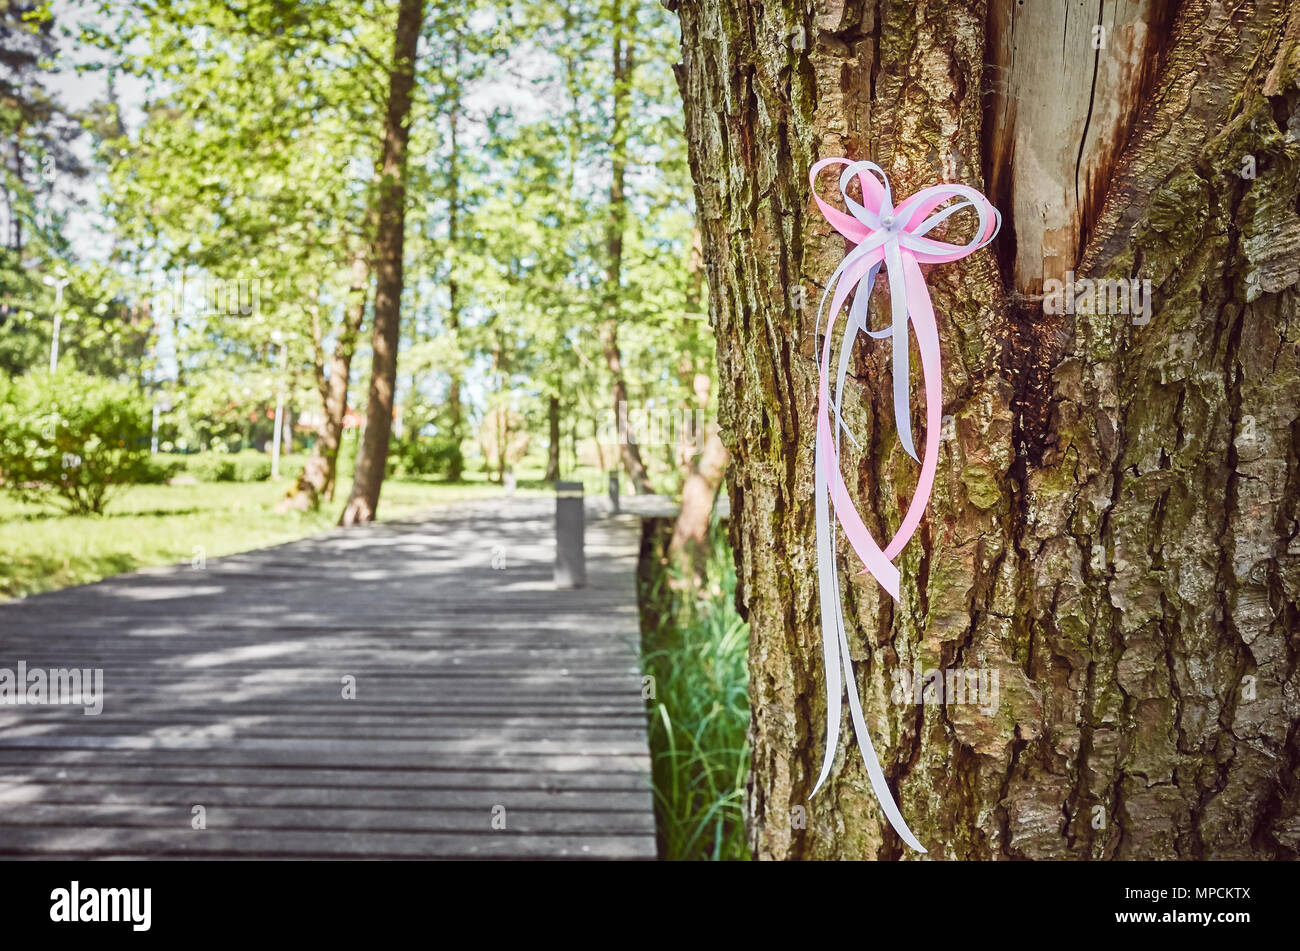 White and pink ribbon on a tree in a park, awareness symbol, selective focus. - Stock Image